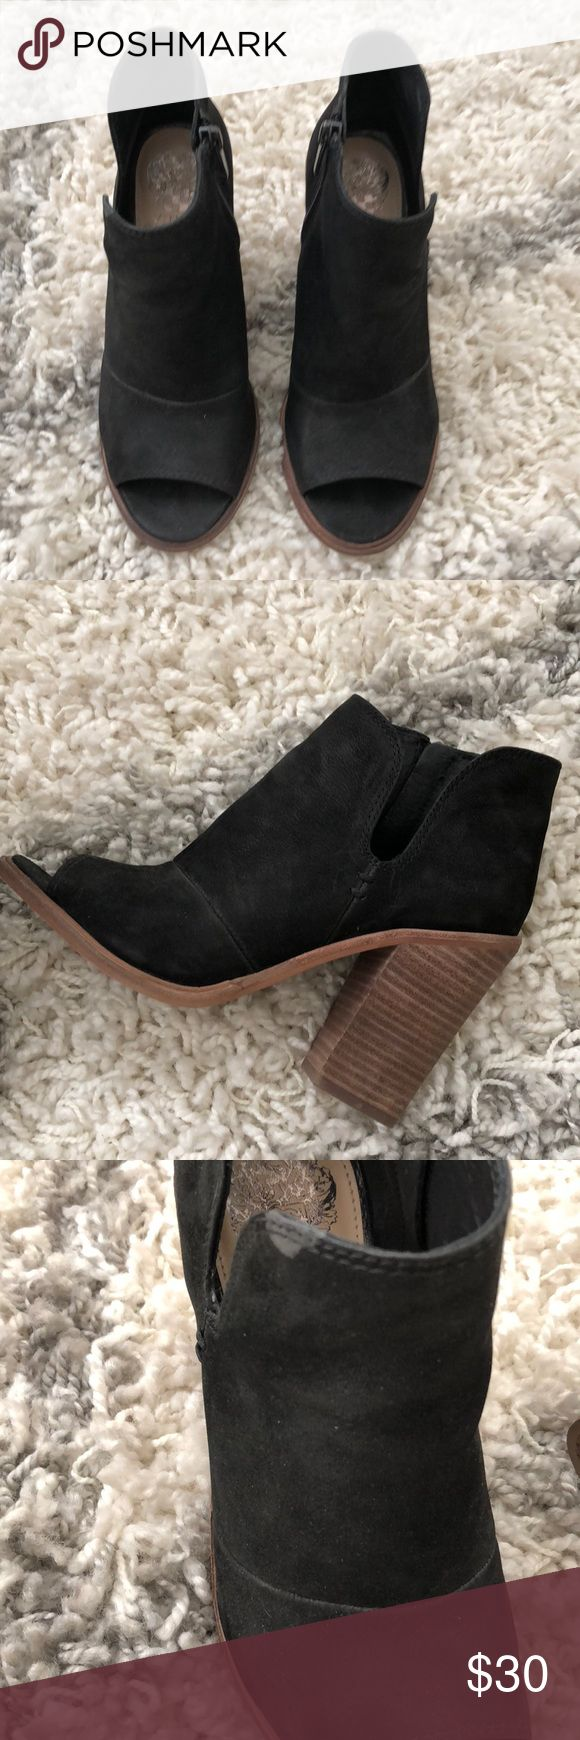 Vince camuto booties Popular Nordstrom anniversary sale 2016 suede booties with cut-out on one side. Zippered on one side. Stacked heel. Shows signs of wear on certain parts of shoe. Vince Camuto Shoes Ankle Boots & Booties